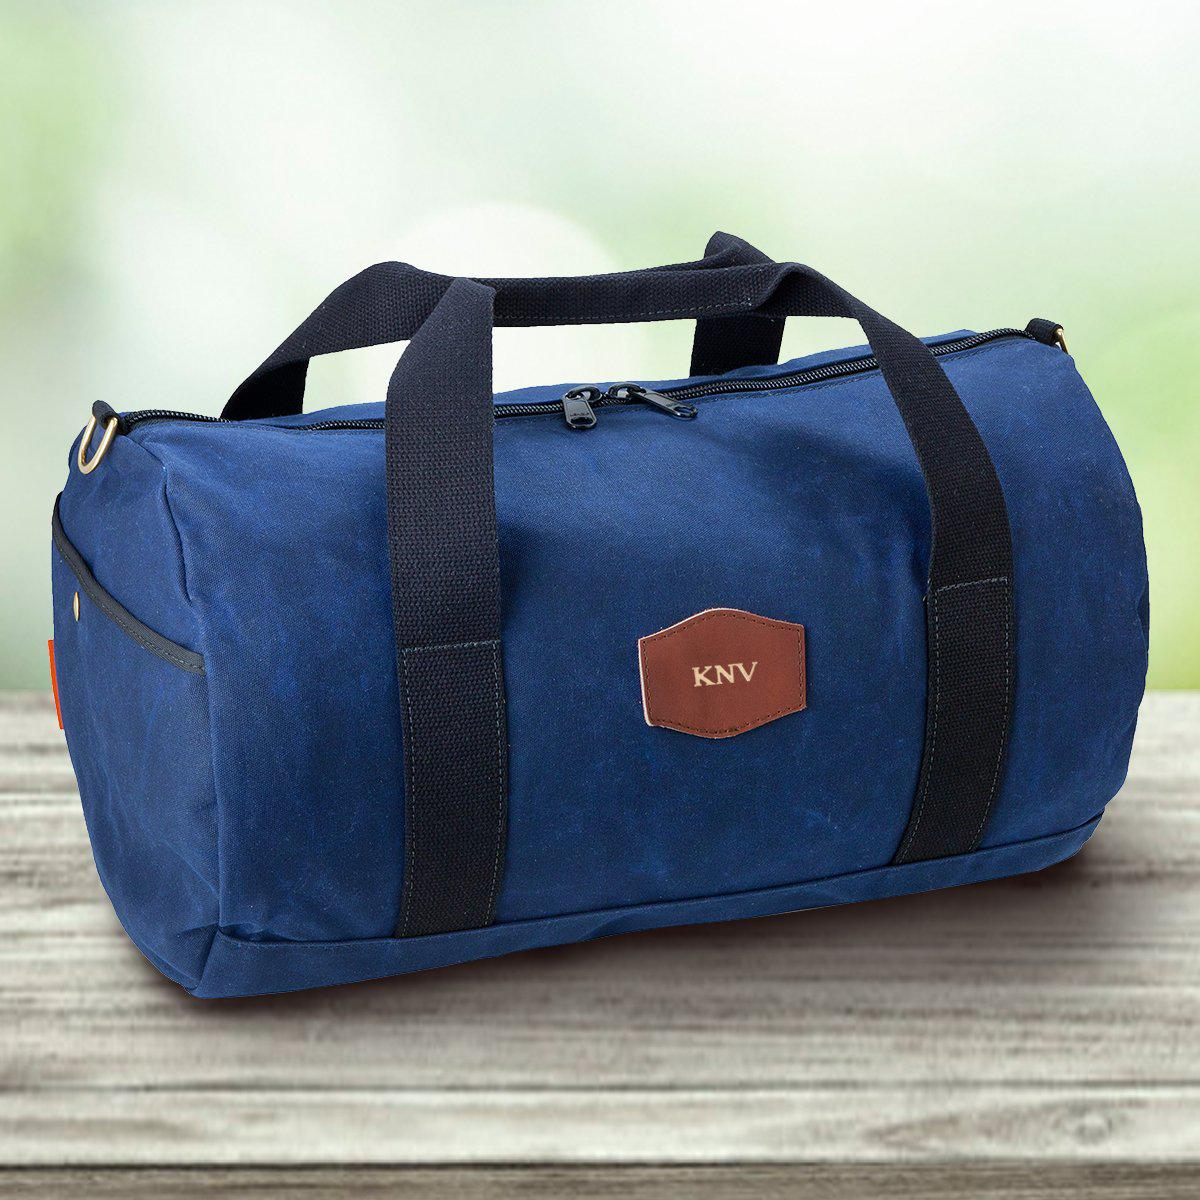 Personalized Duffle Bag - Waxed Canvas - Blue